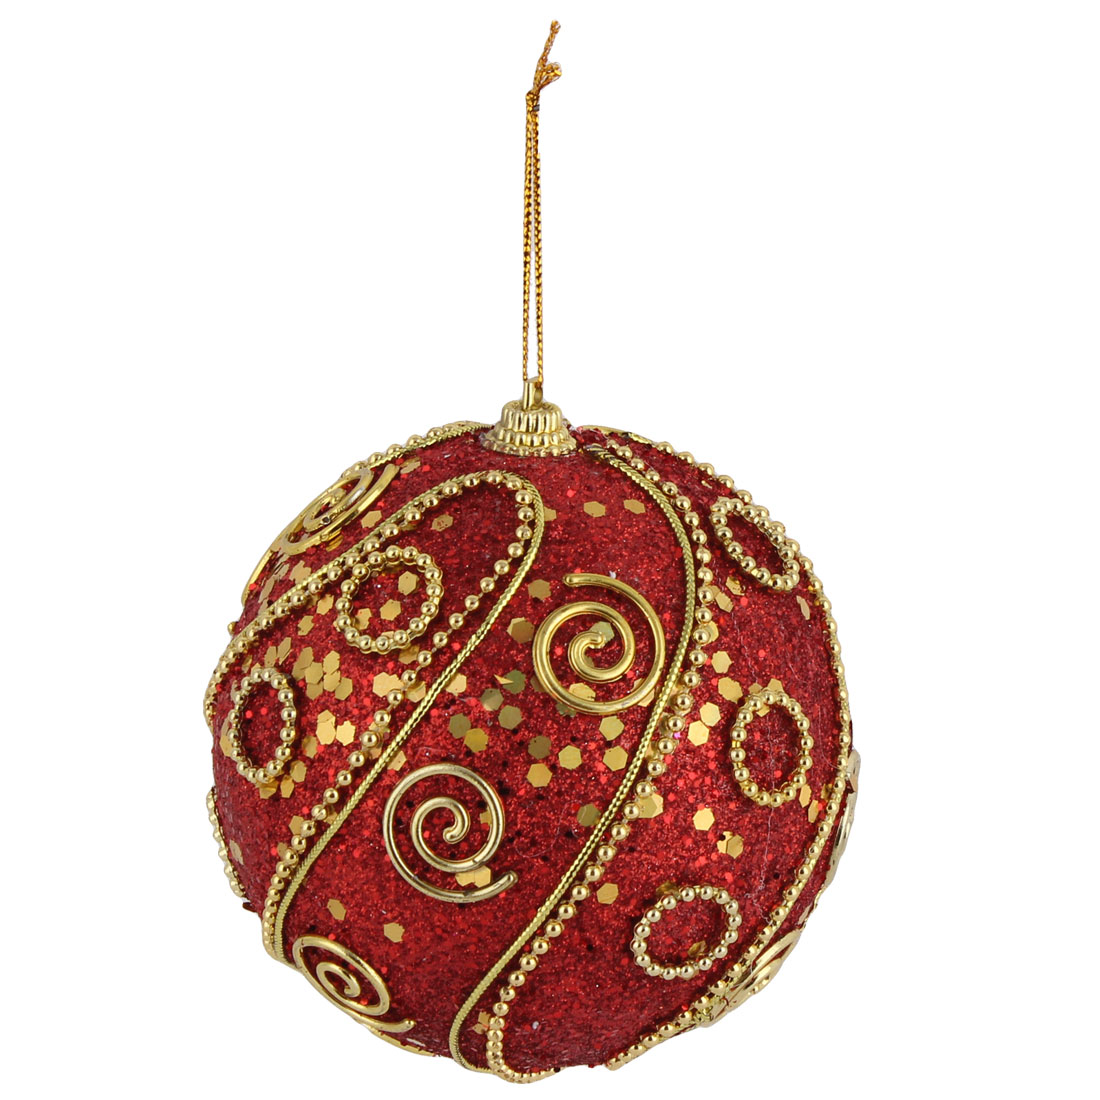 Unique Bargains Christmas Tree Plastic Artificial Collectible Ornament Hanging Baubles Ball